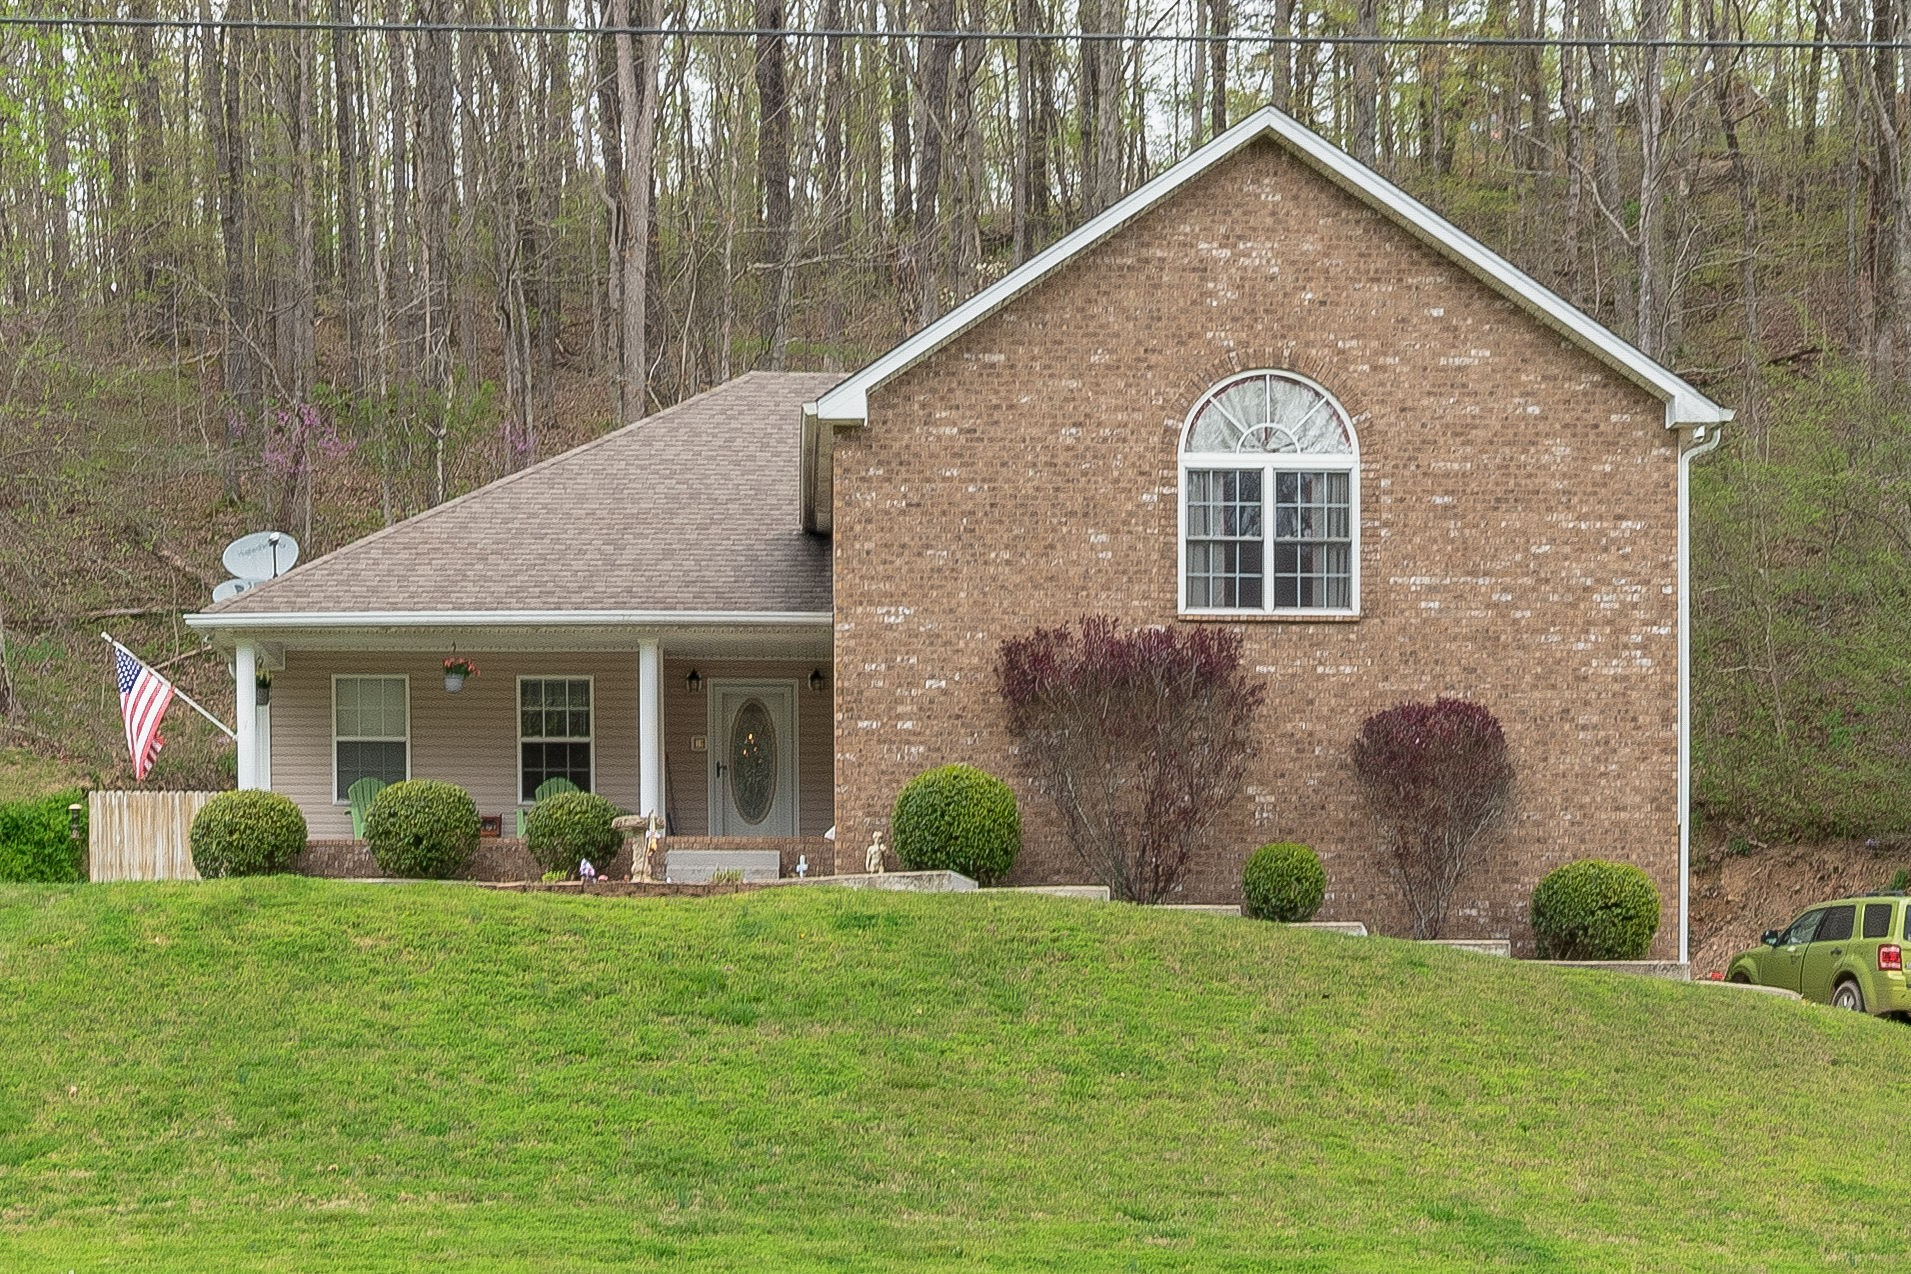 1112 Pee Dee Branch Rd, Cottontown, TN 37048 - Cottontown, TN real estate listing